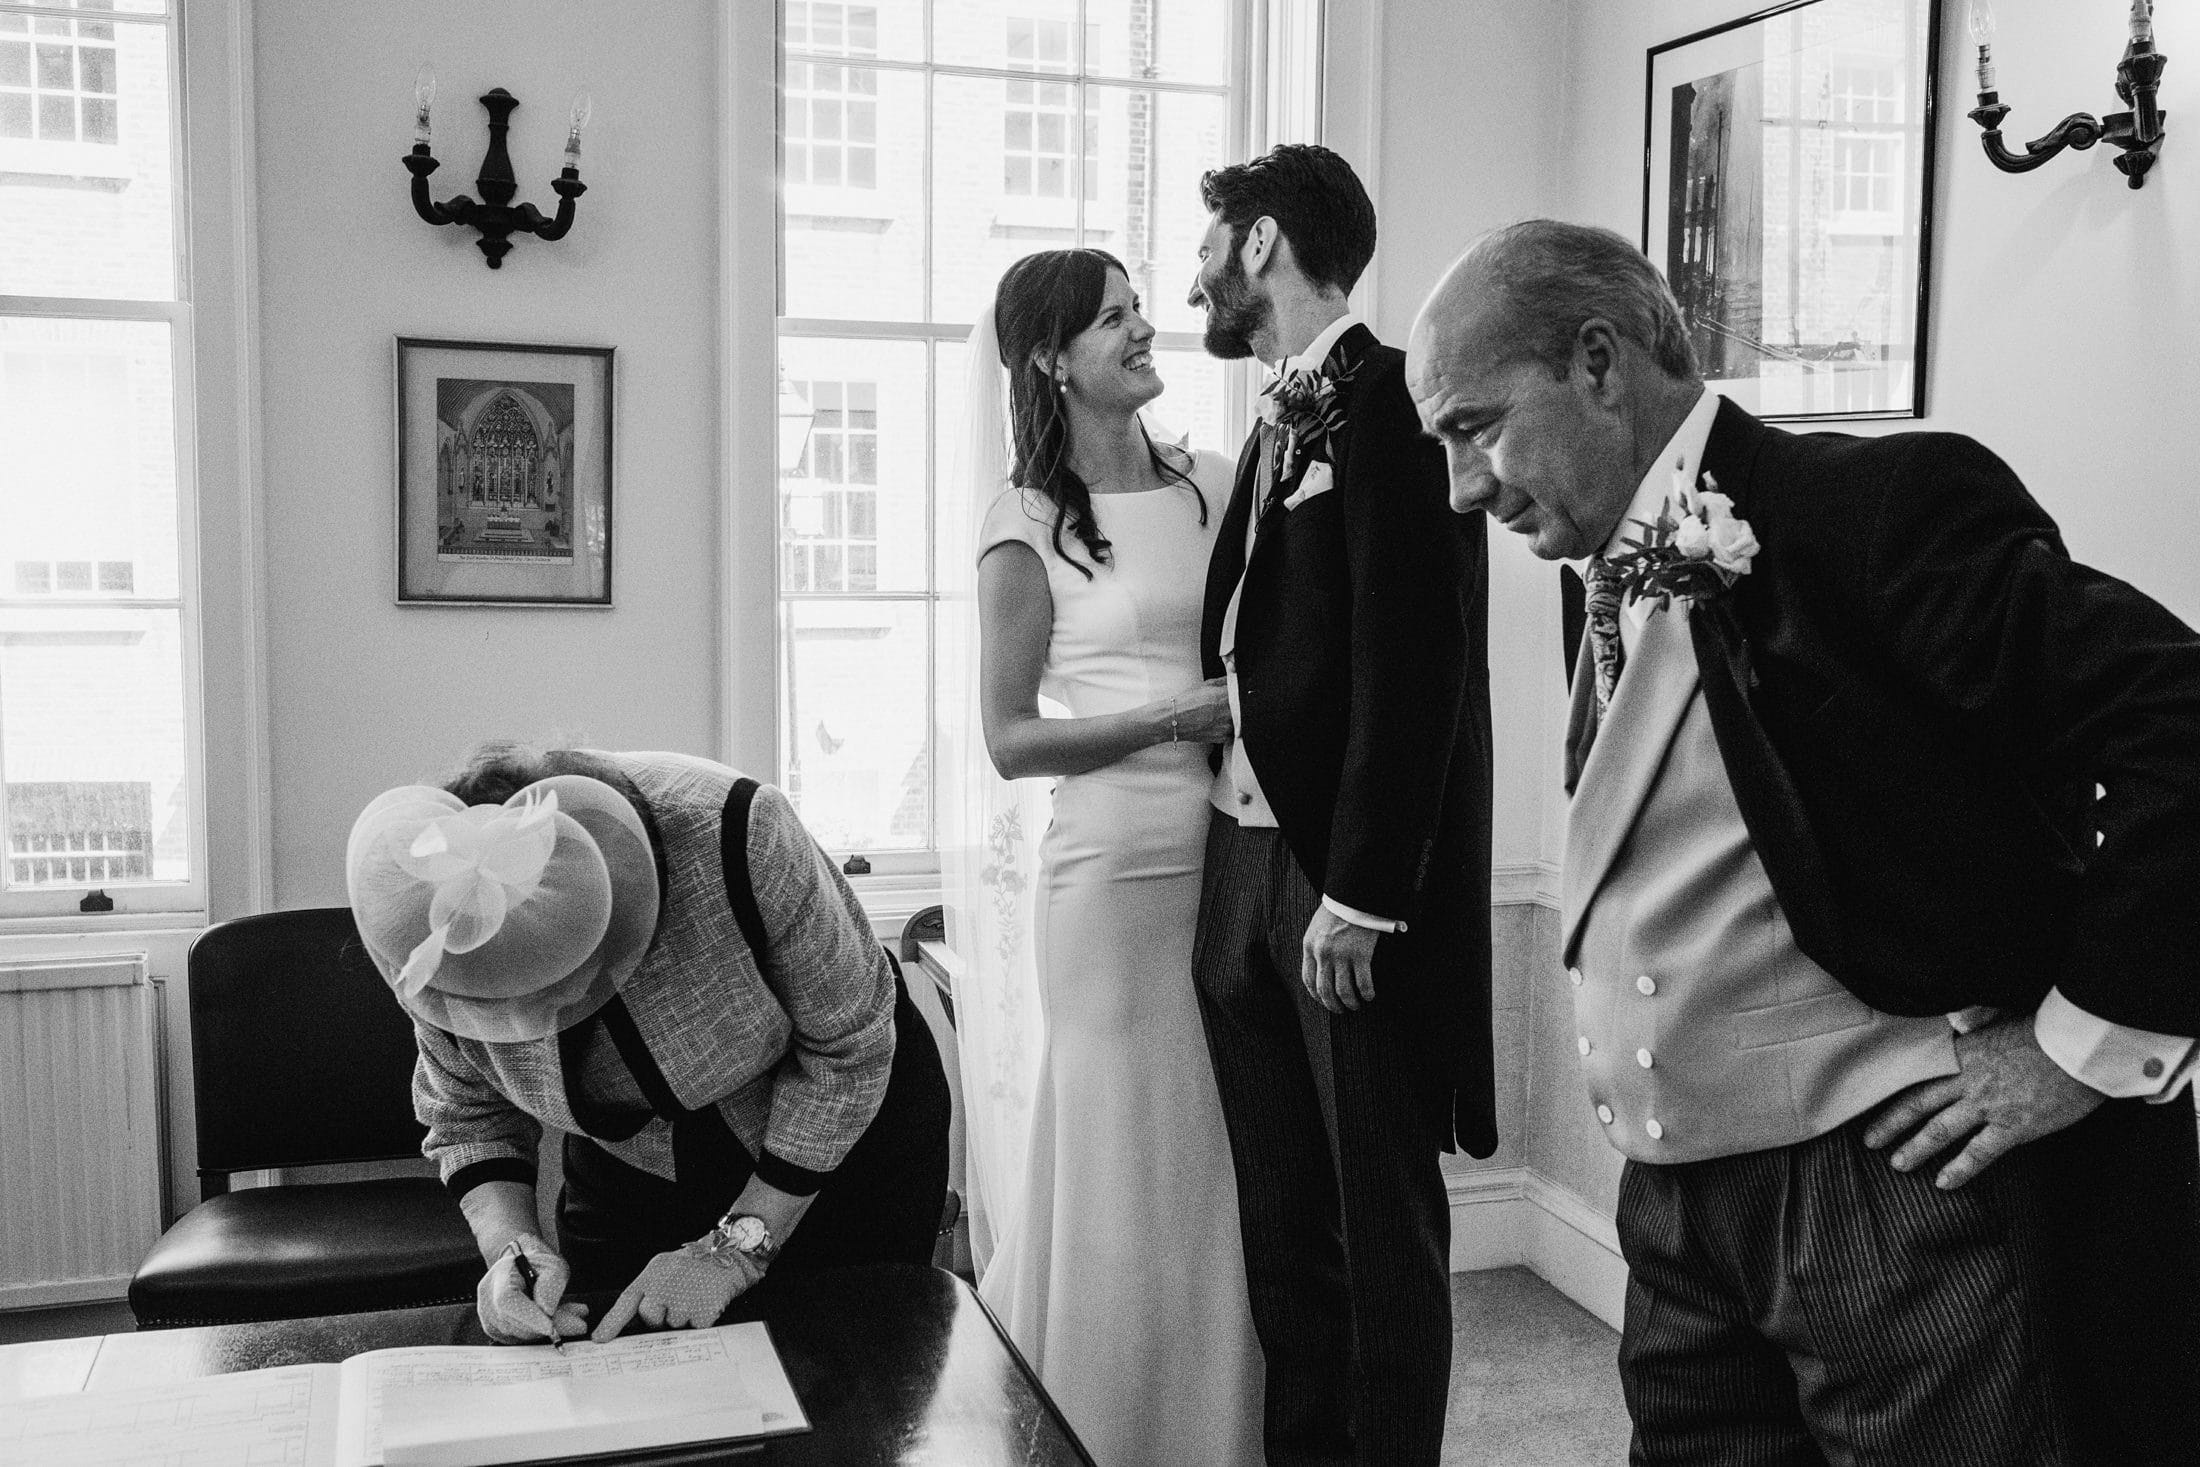 Woman leans down to sign the register at an intimate micro wedding. Beside her the bride and groom share a smile whilst in the foreground the father of the bride stands looking across the frame